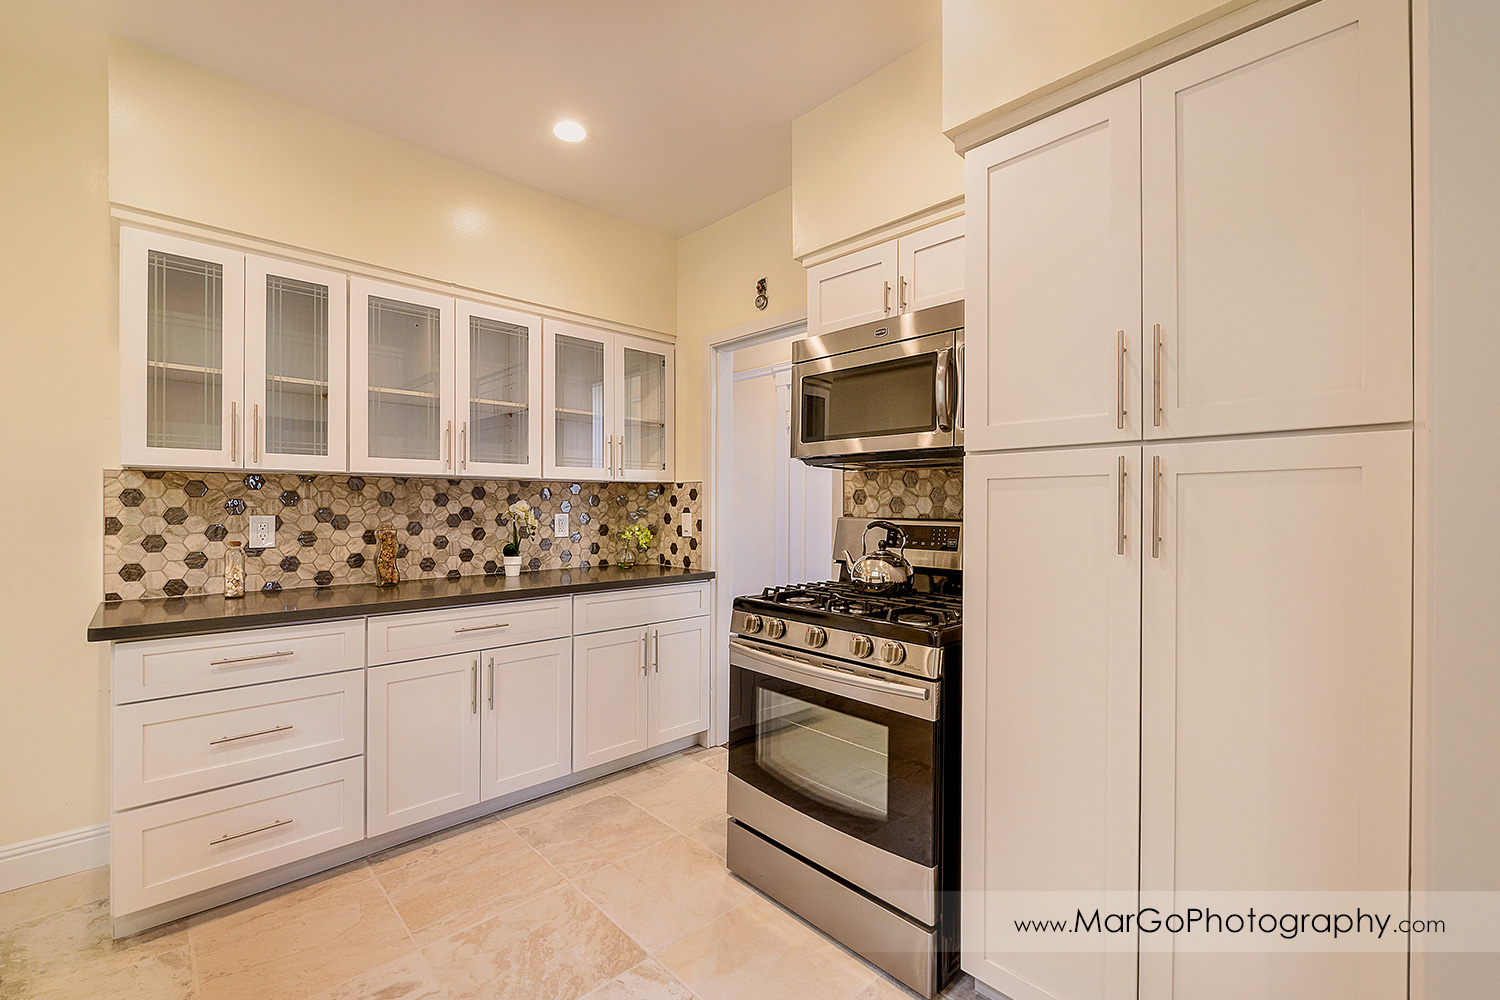 San Francisco house kitchen with view white cabinets - real estate photography